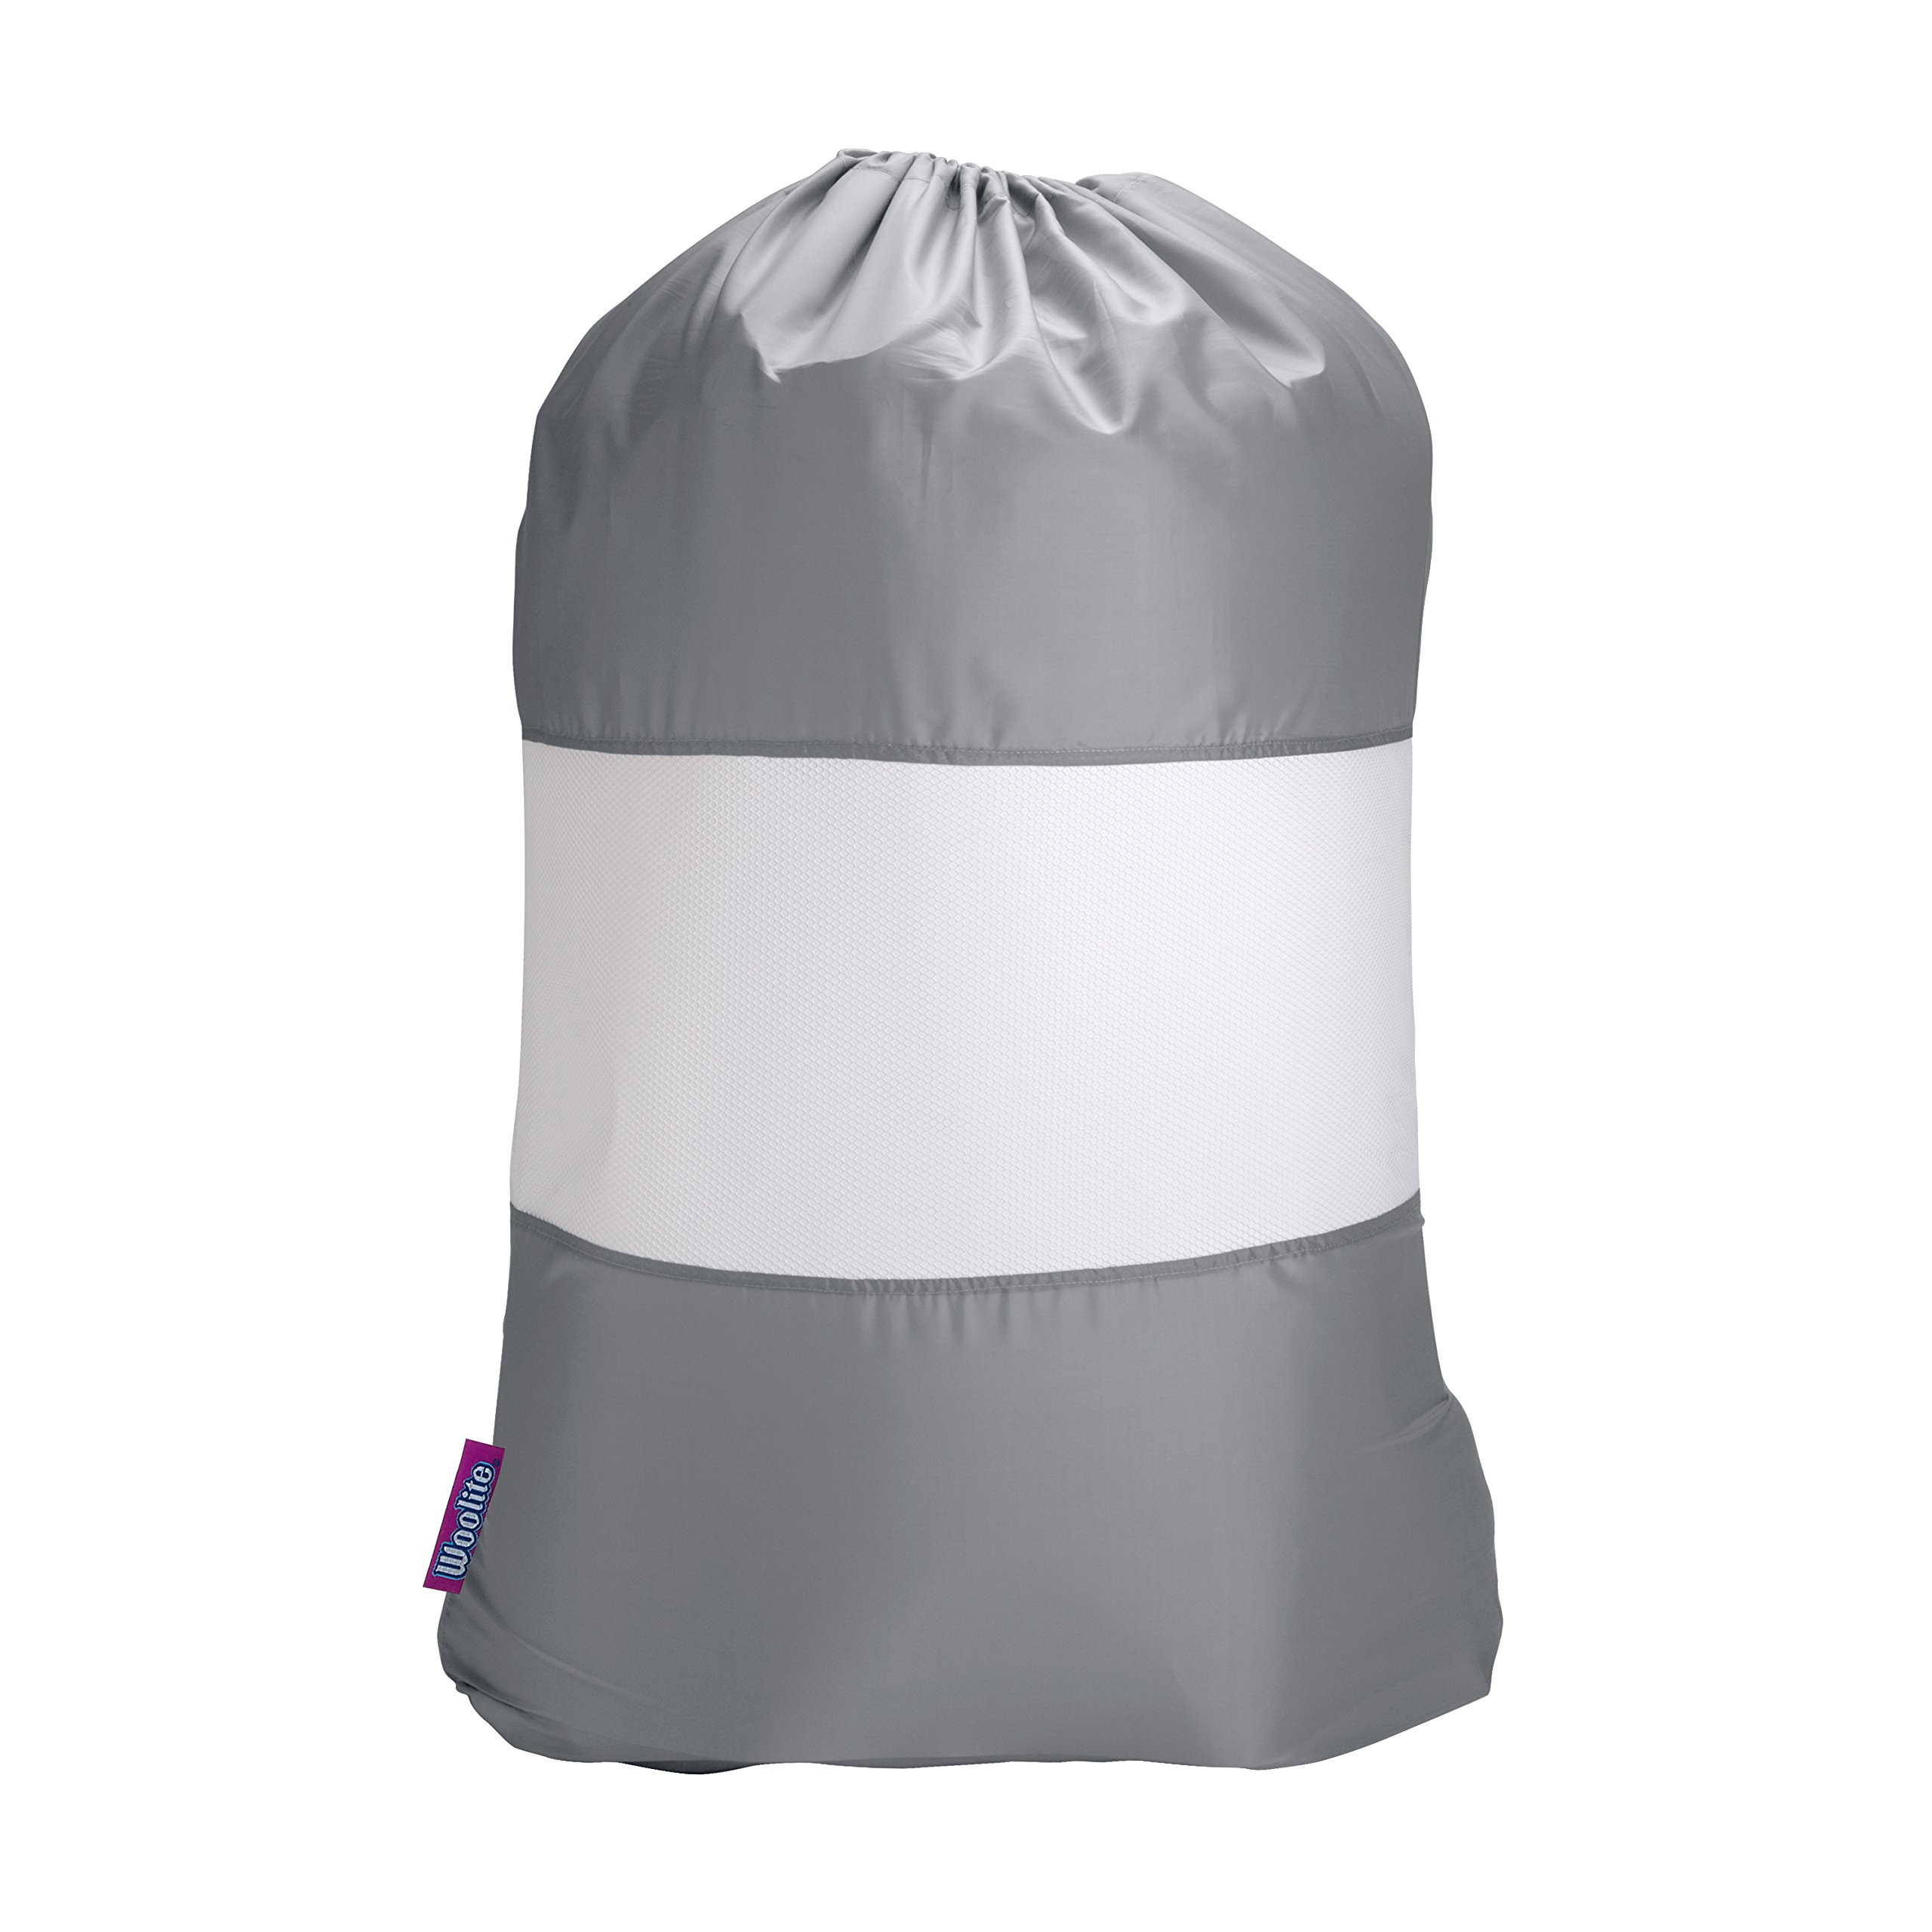 Woolite Sanitized Laundry Bag with Mesh Window